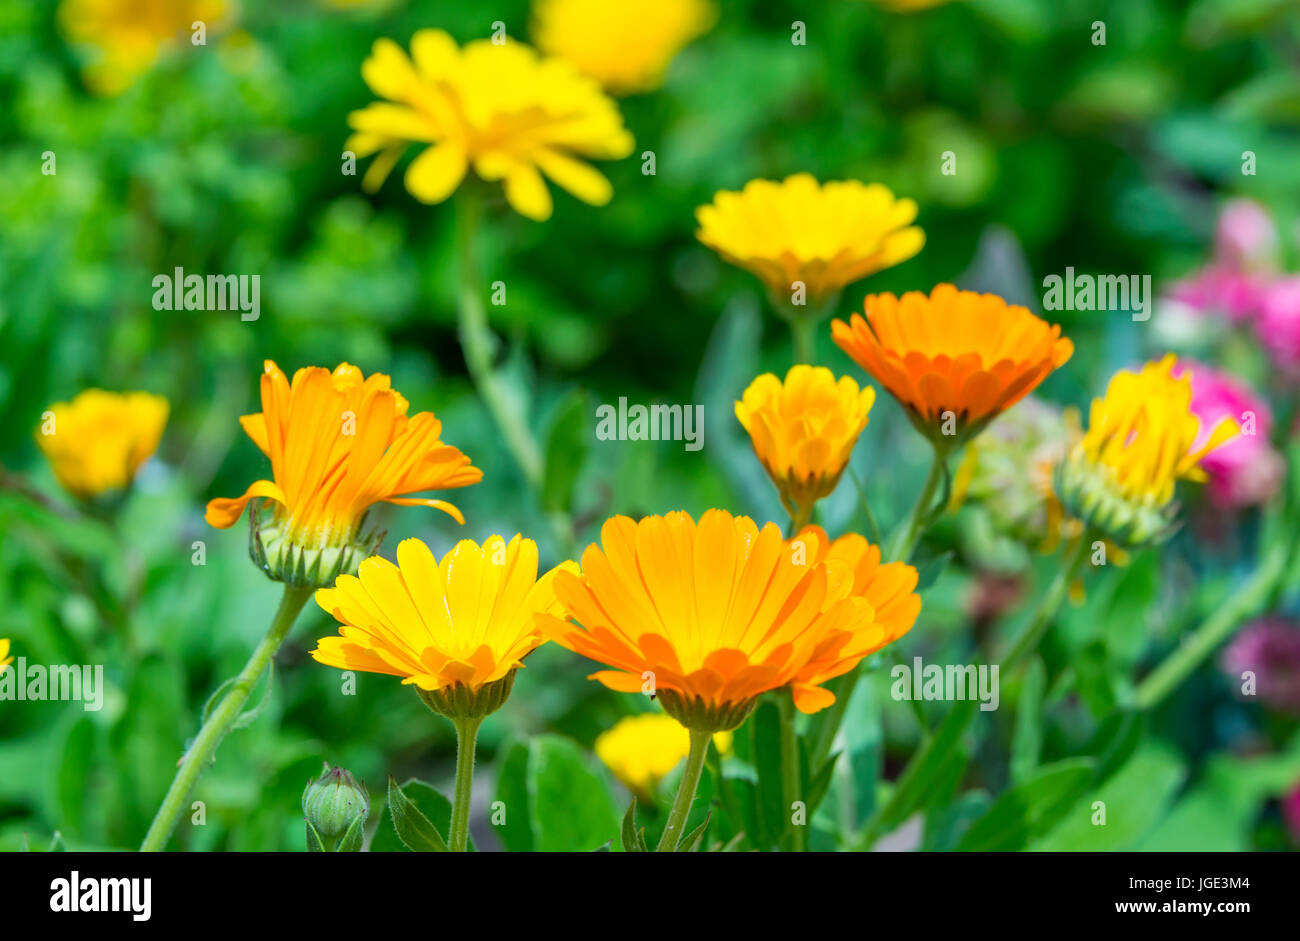 Pot Marigold plant (Calendula officinalis) flowers in bloom in Summer in the UK. AKA Common Marigold, Ruddles, Scotch Stock Photo